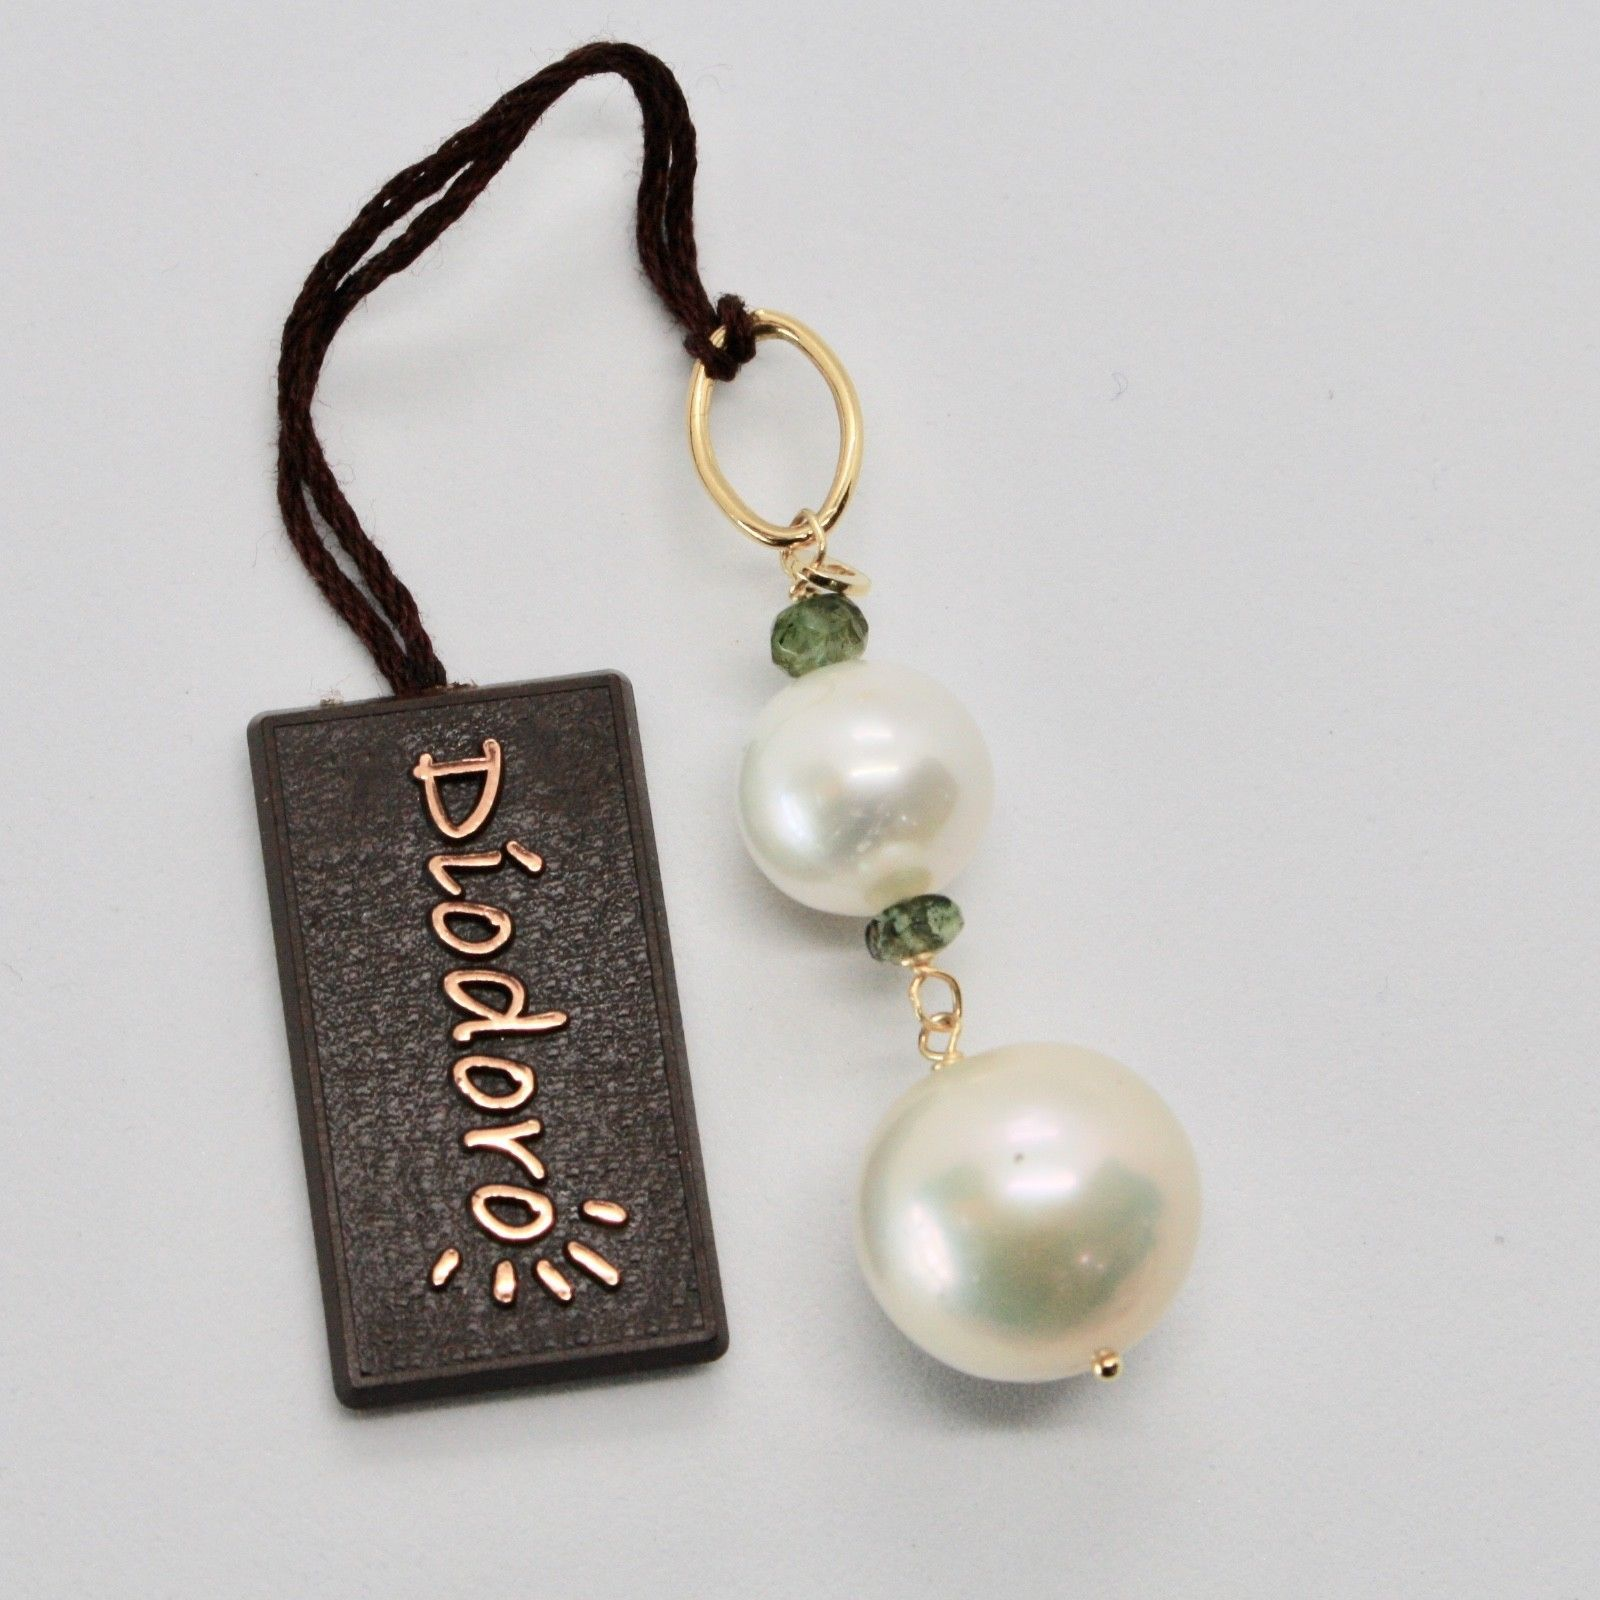 PENDANT YELLOW GOLD 18KT WITH WHITE PEARLS OF WATER DOLCE AND TOURMALINE GREEN